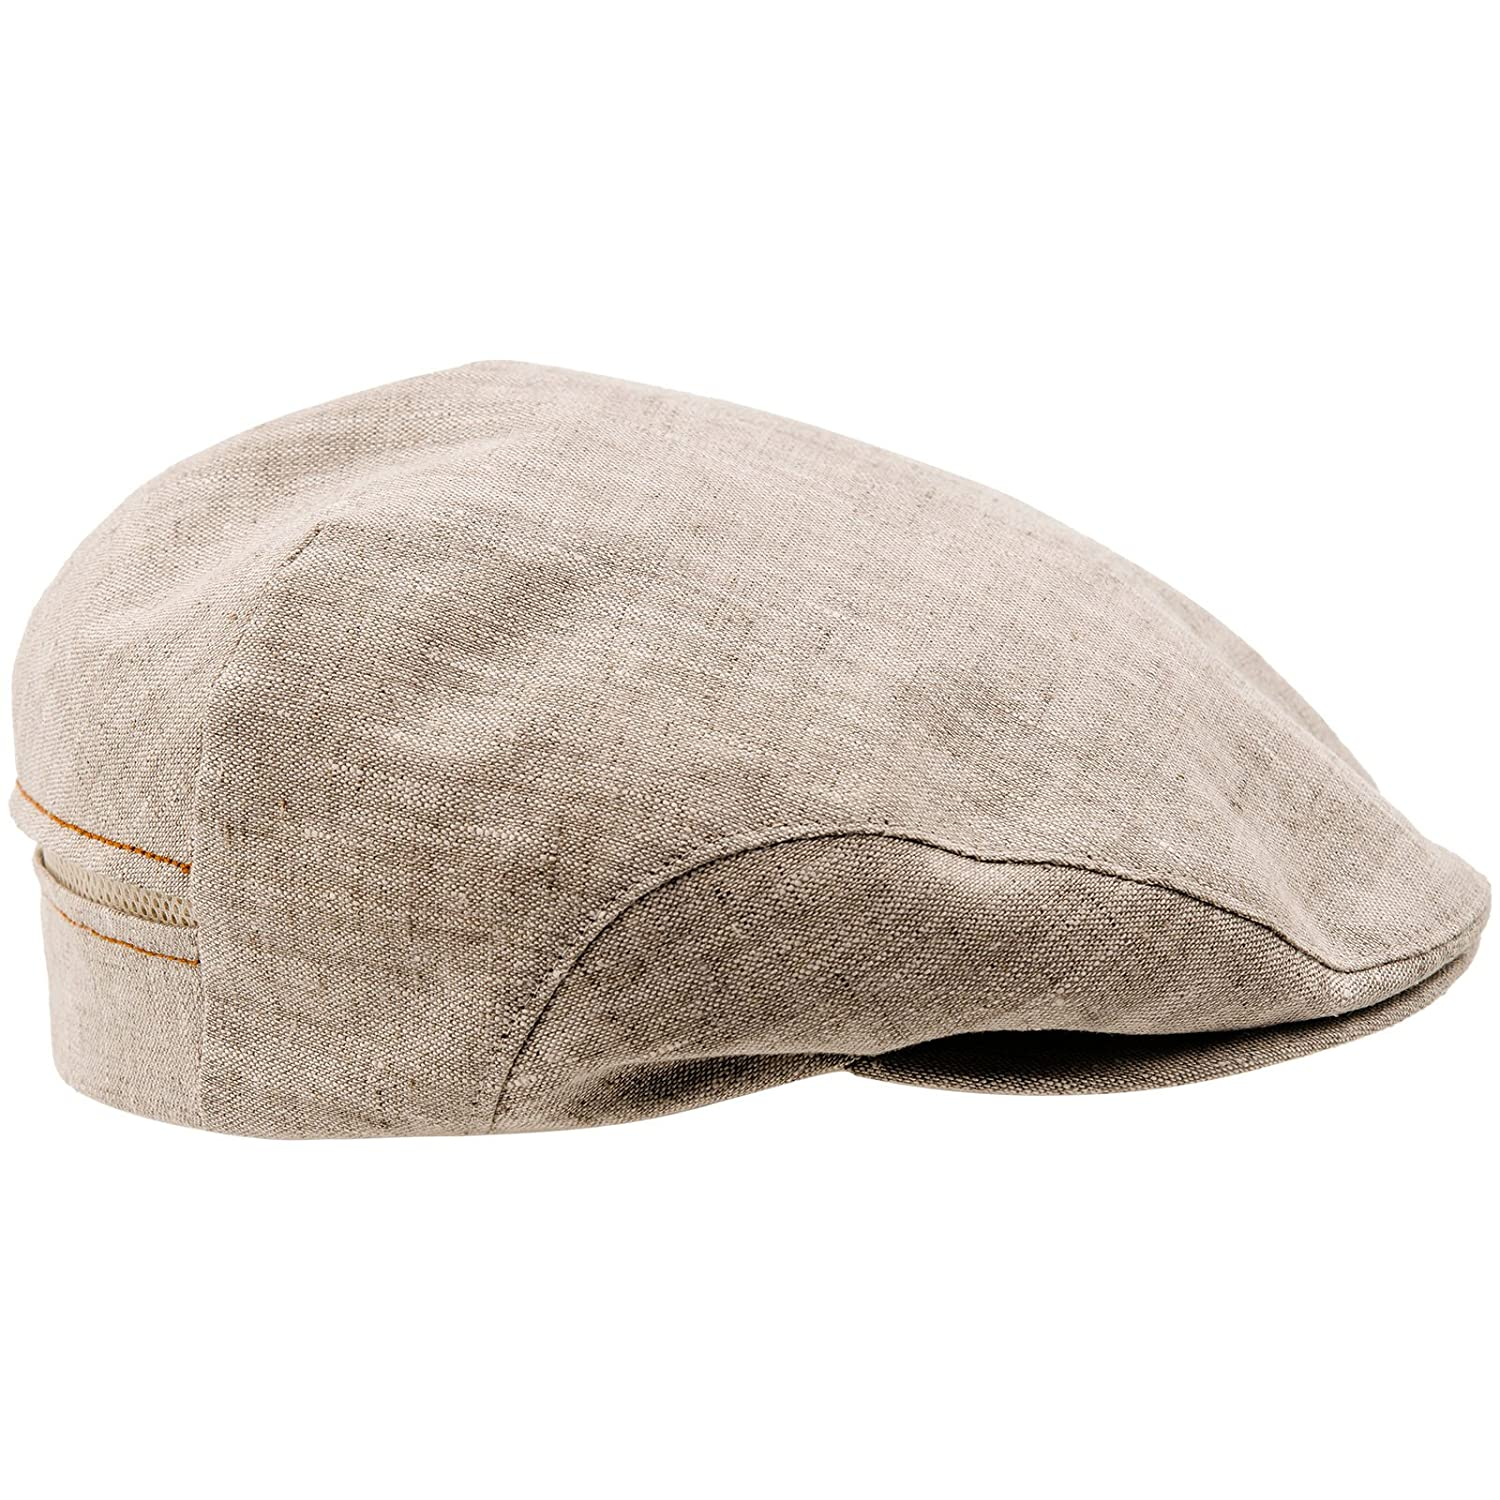 9a8411a03 Sterkowski Derby • 100% Linen Summer Ivy League Flat Cap